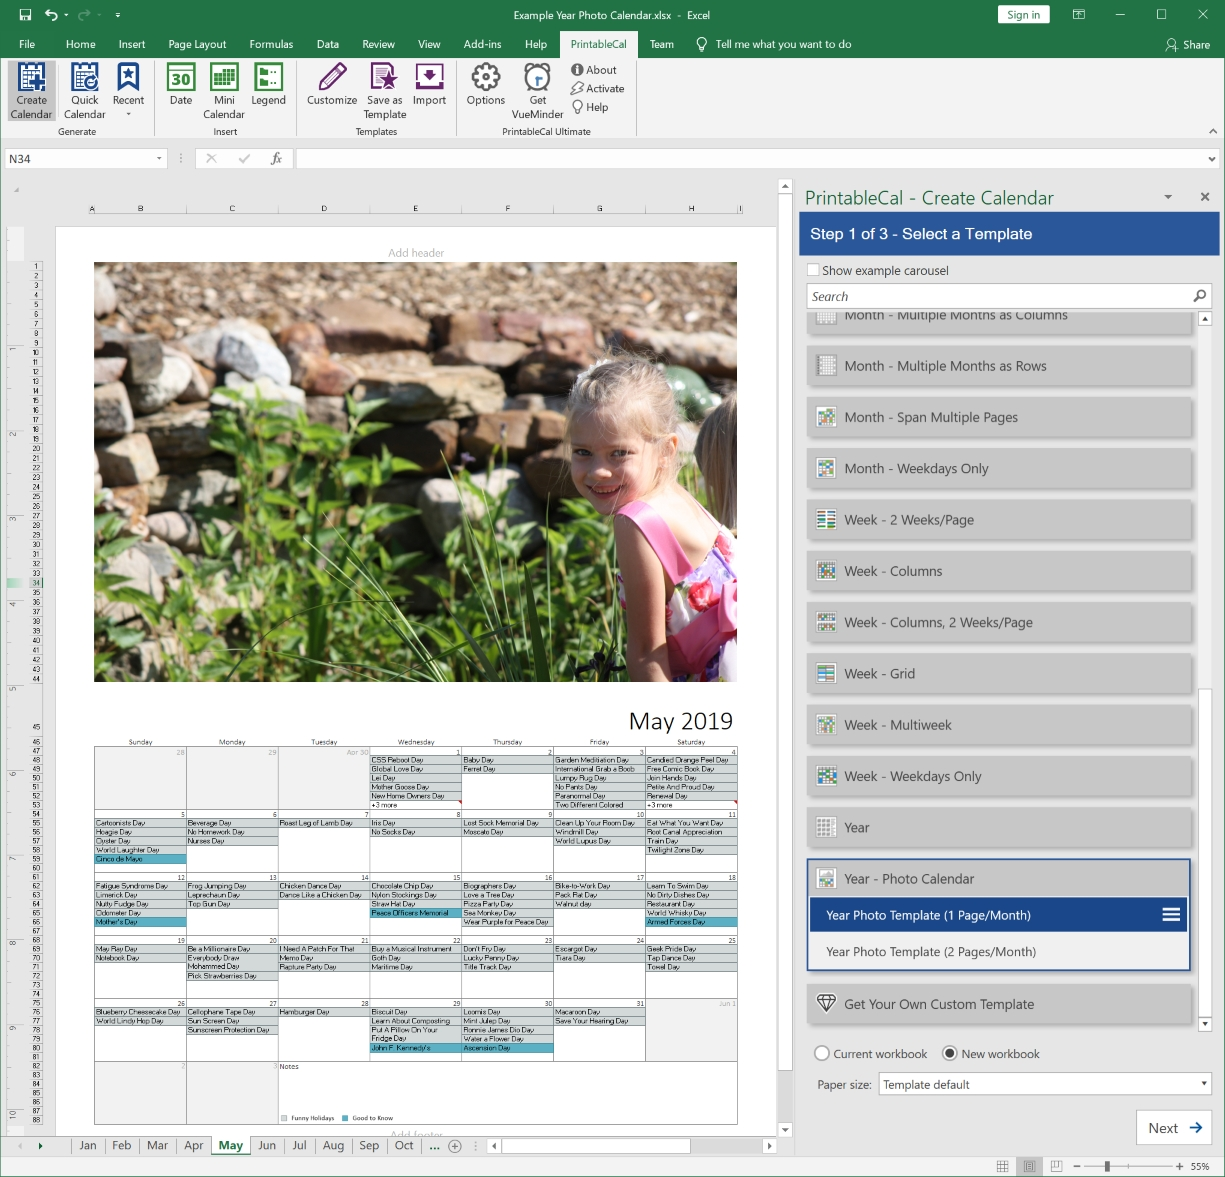 Create Printable Calendars In Excel Or Word_Calendar Printing Software For Windows 7